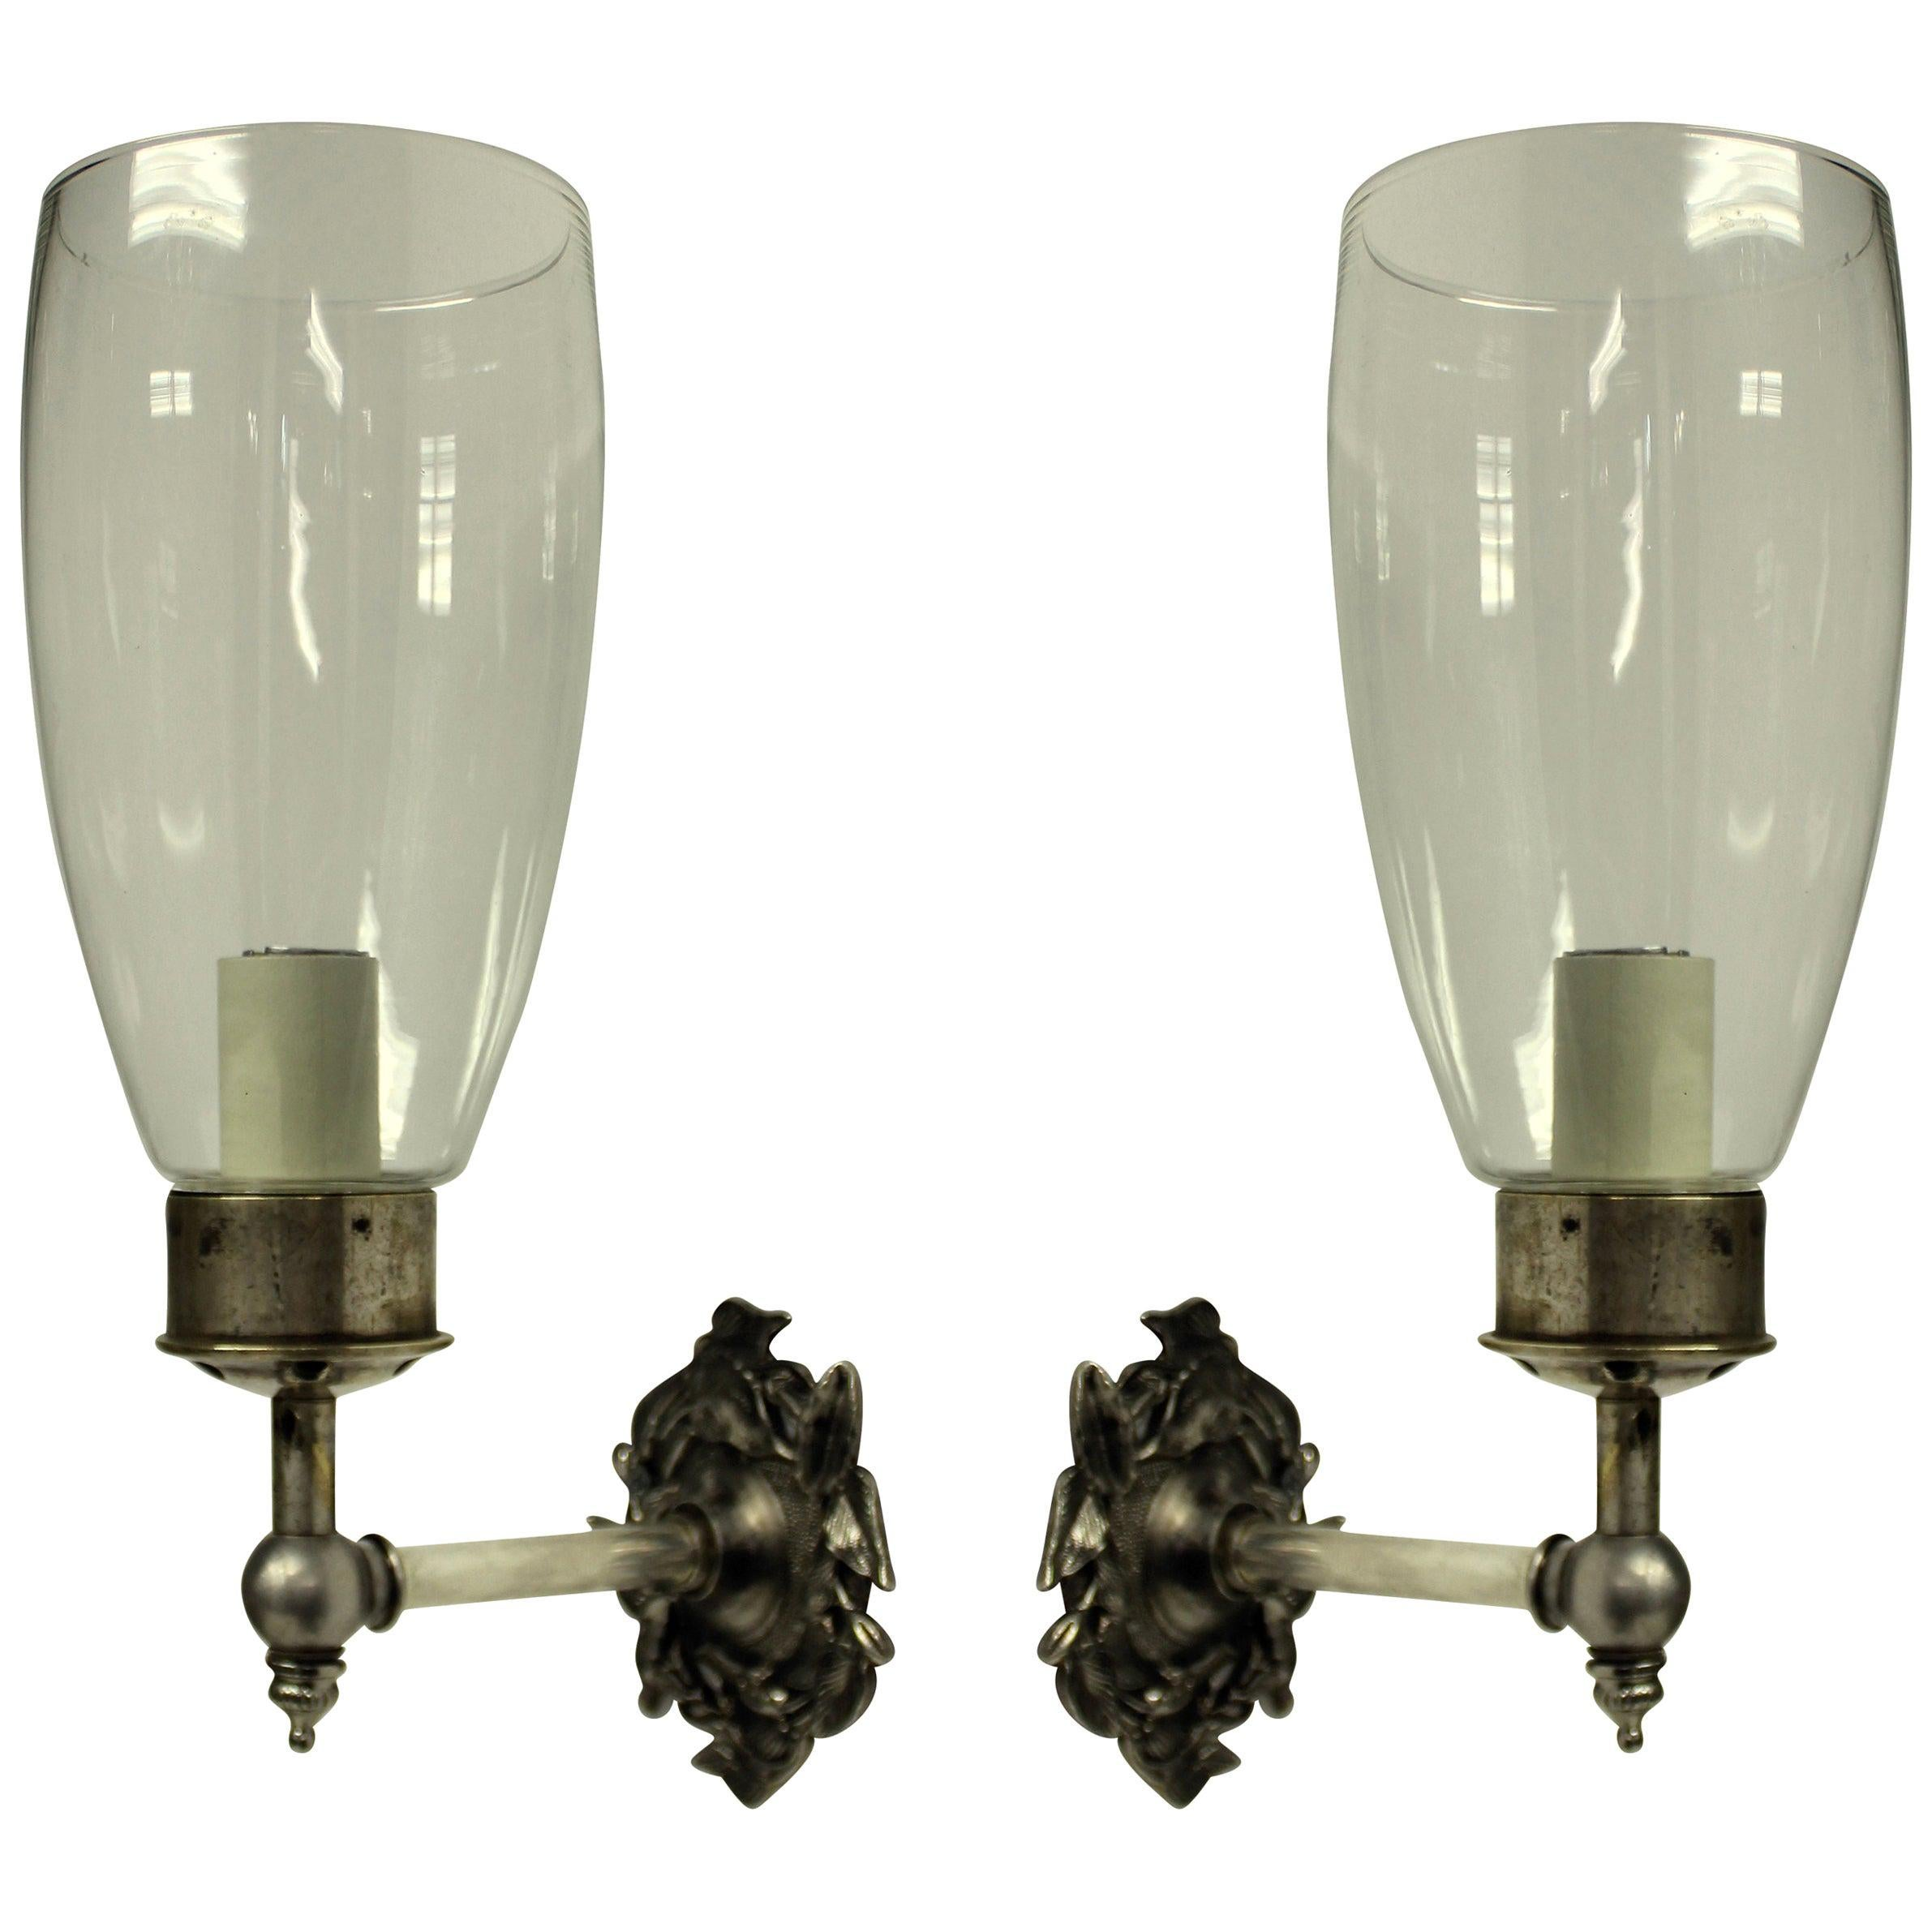 Pair of Single Arm Wall Sconces with Storm Shades